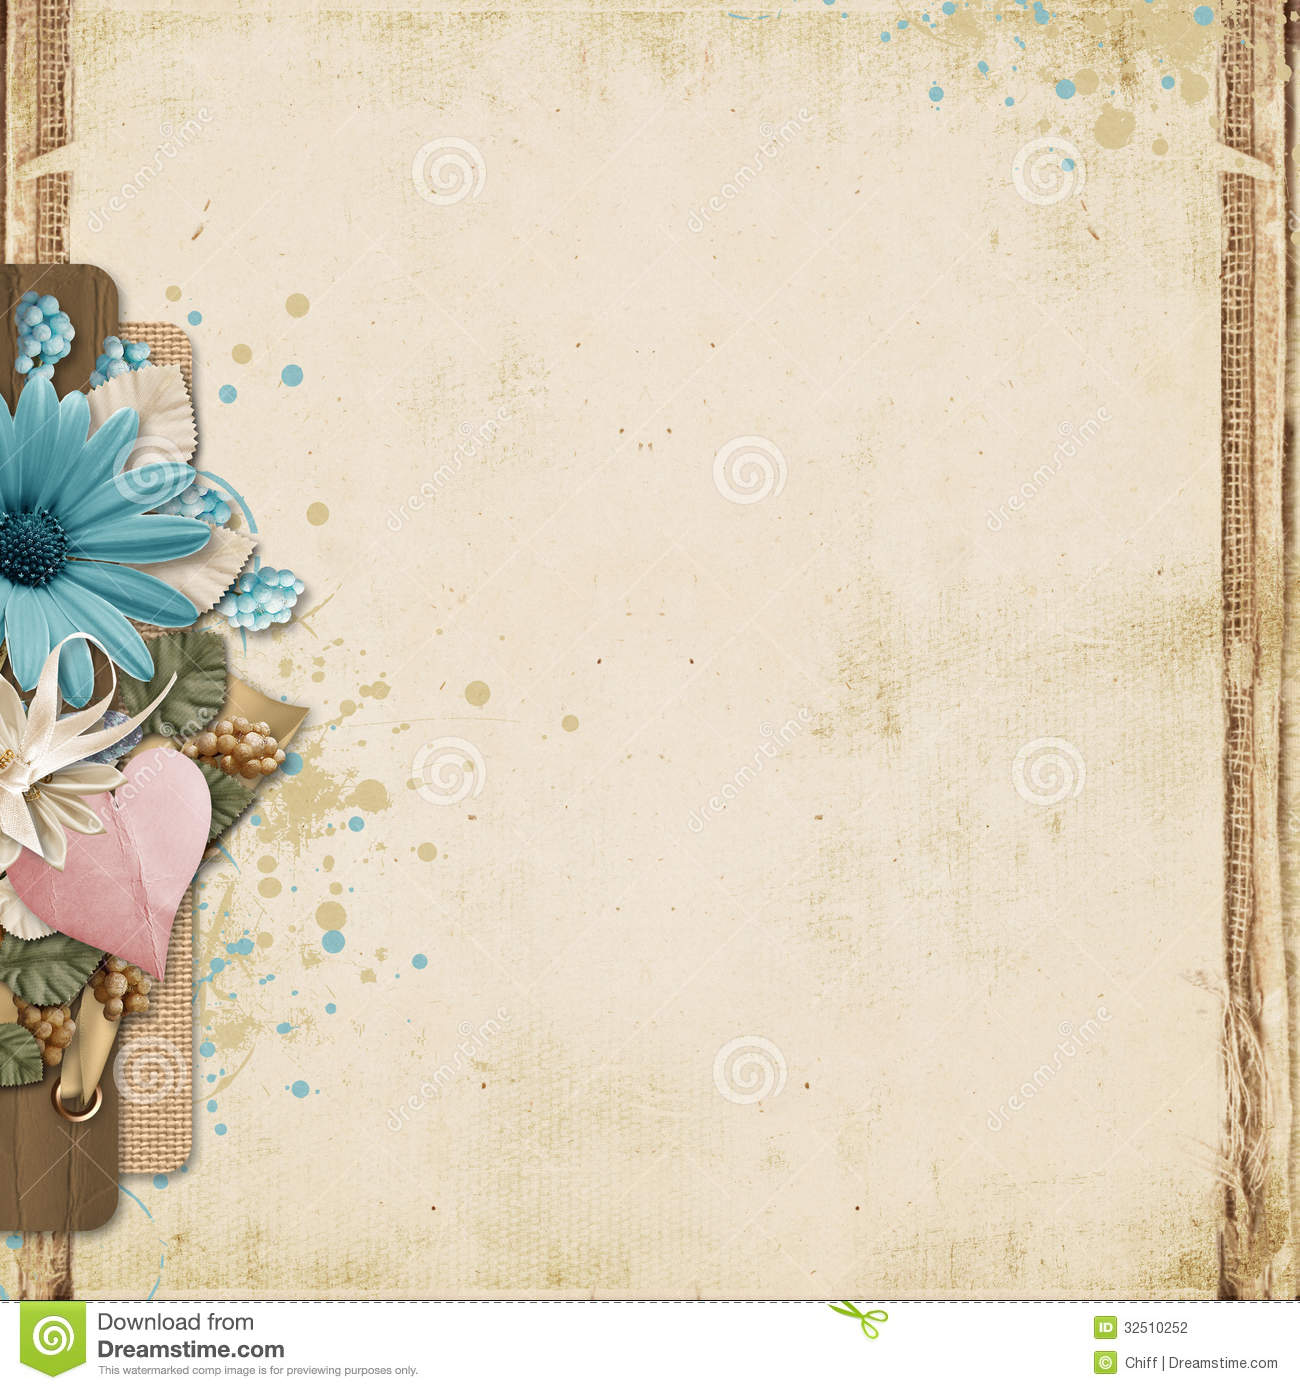 Baby Girl Wallpaper Borders Pink And Purple Vintage Background With Turquoise Flowers And Heart Stock